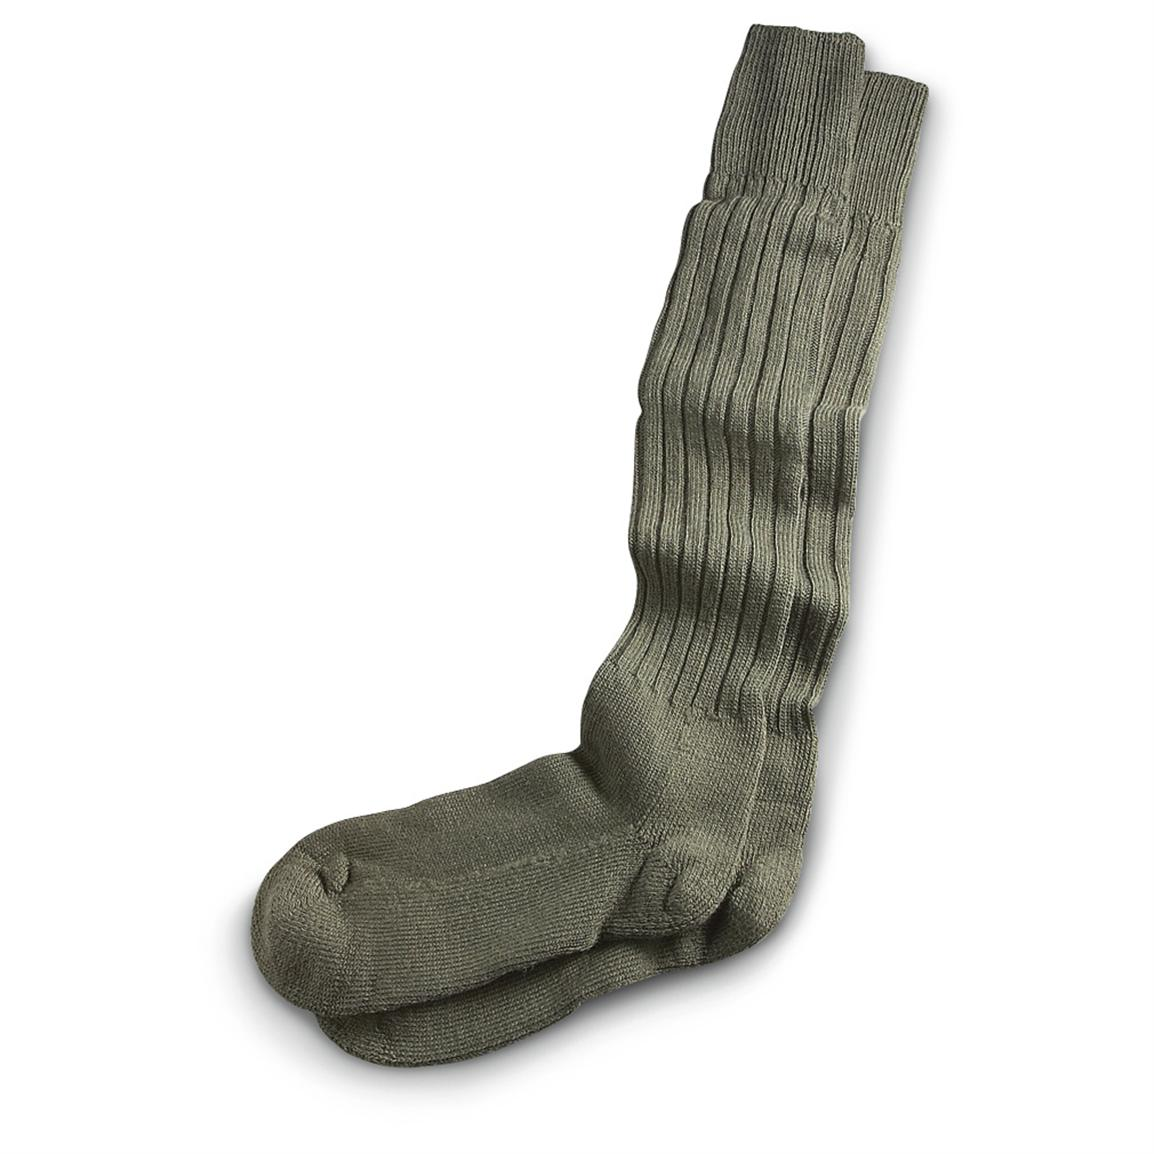 New German Military Surplus Extra-long Socks, Olive Drab